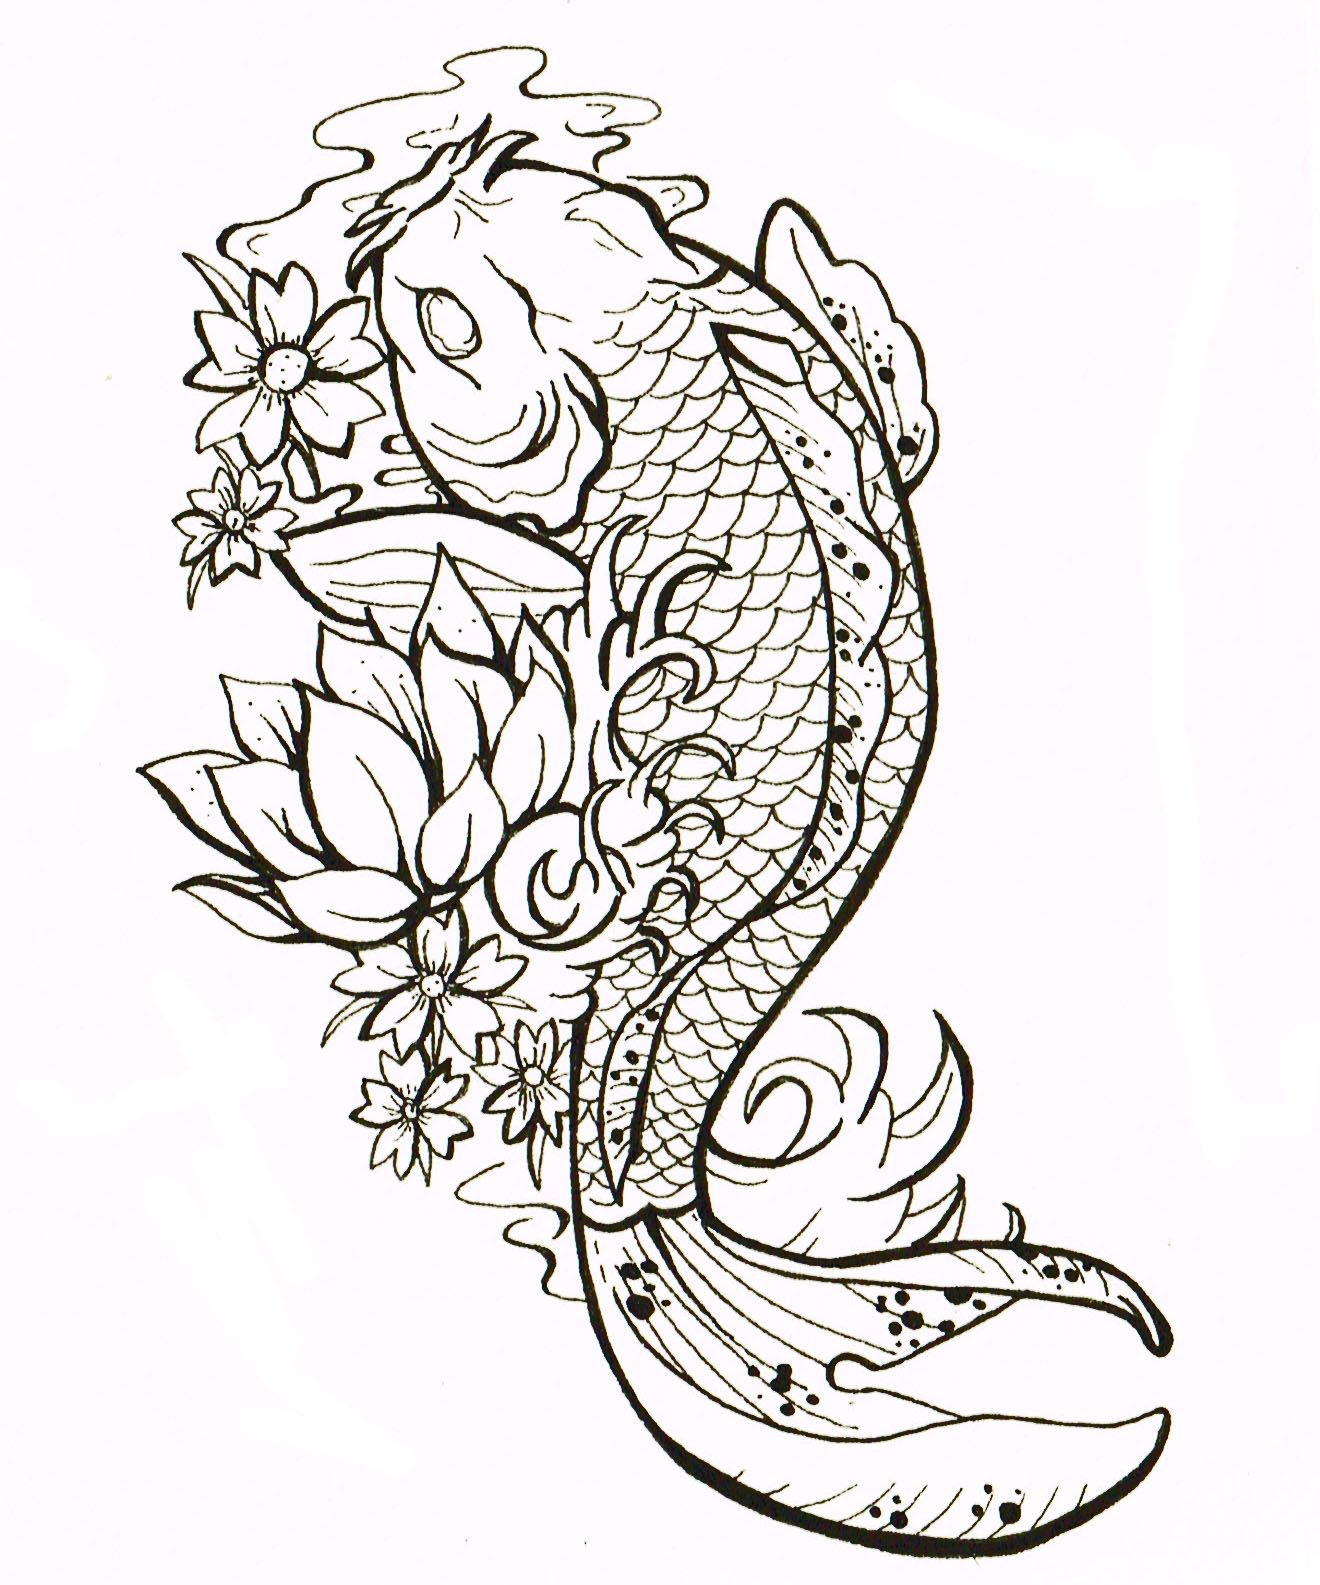 Koi carp drawing 1320 1585 carp orname for Koi fish designs